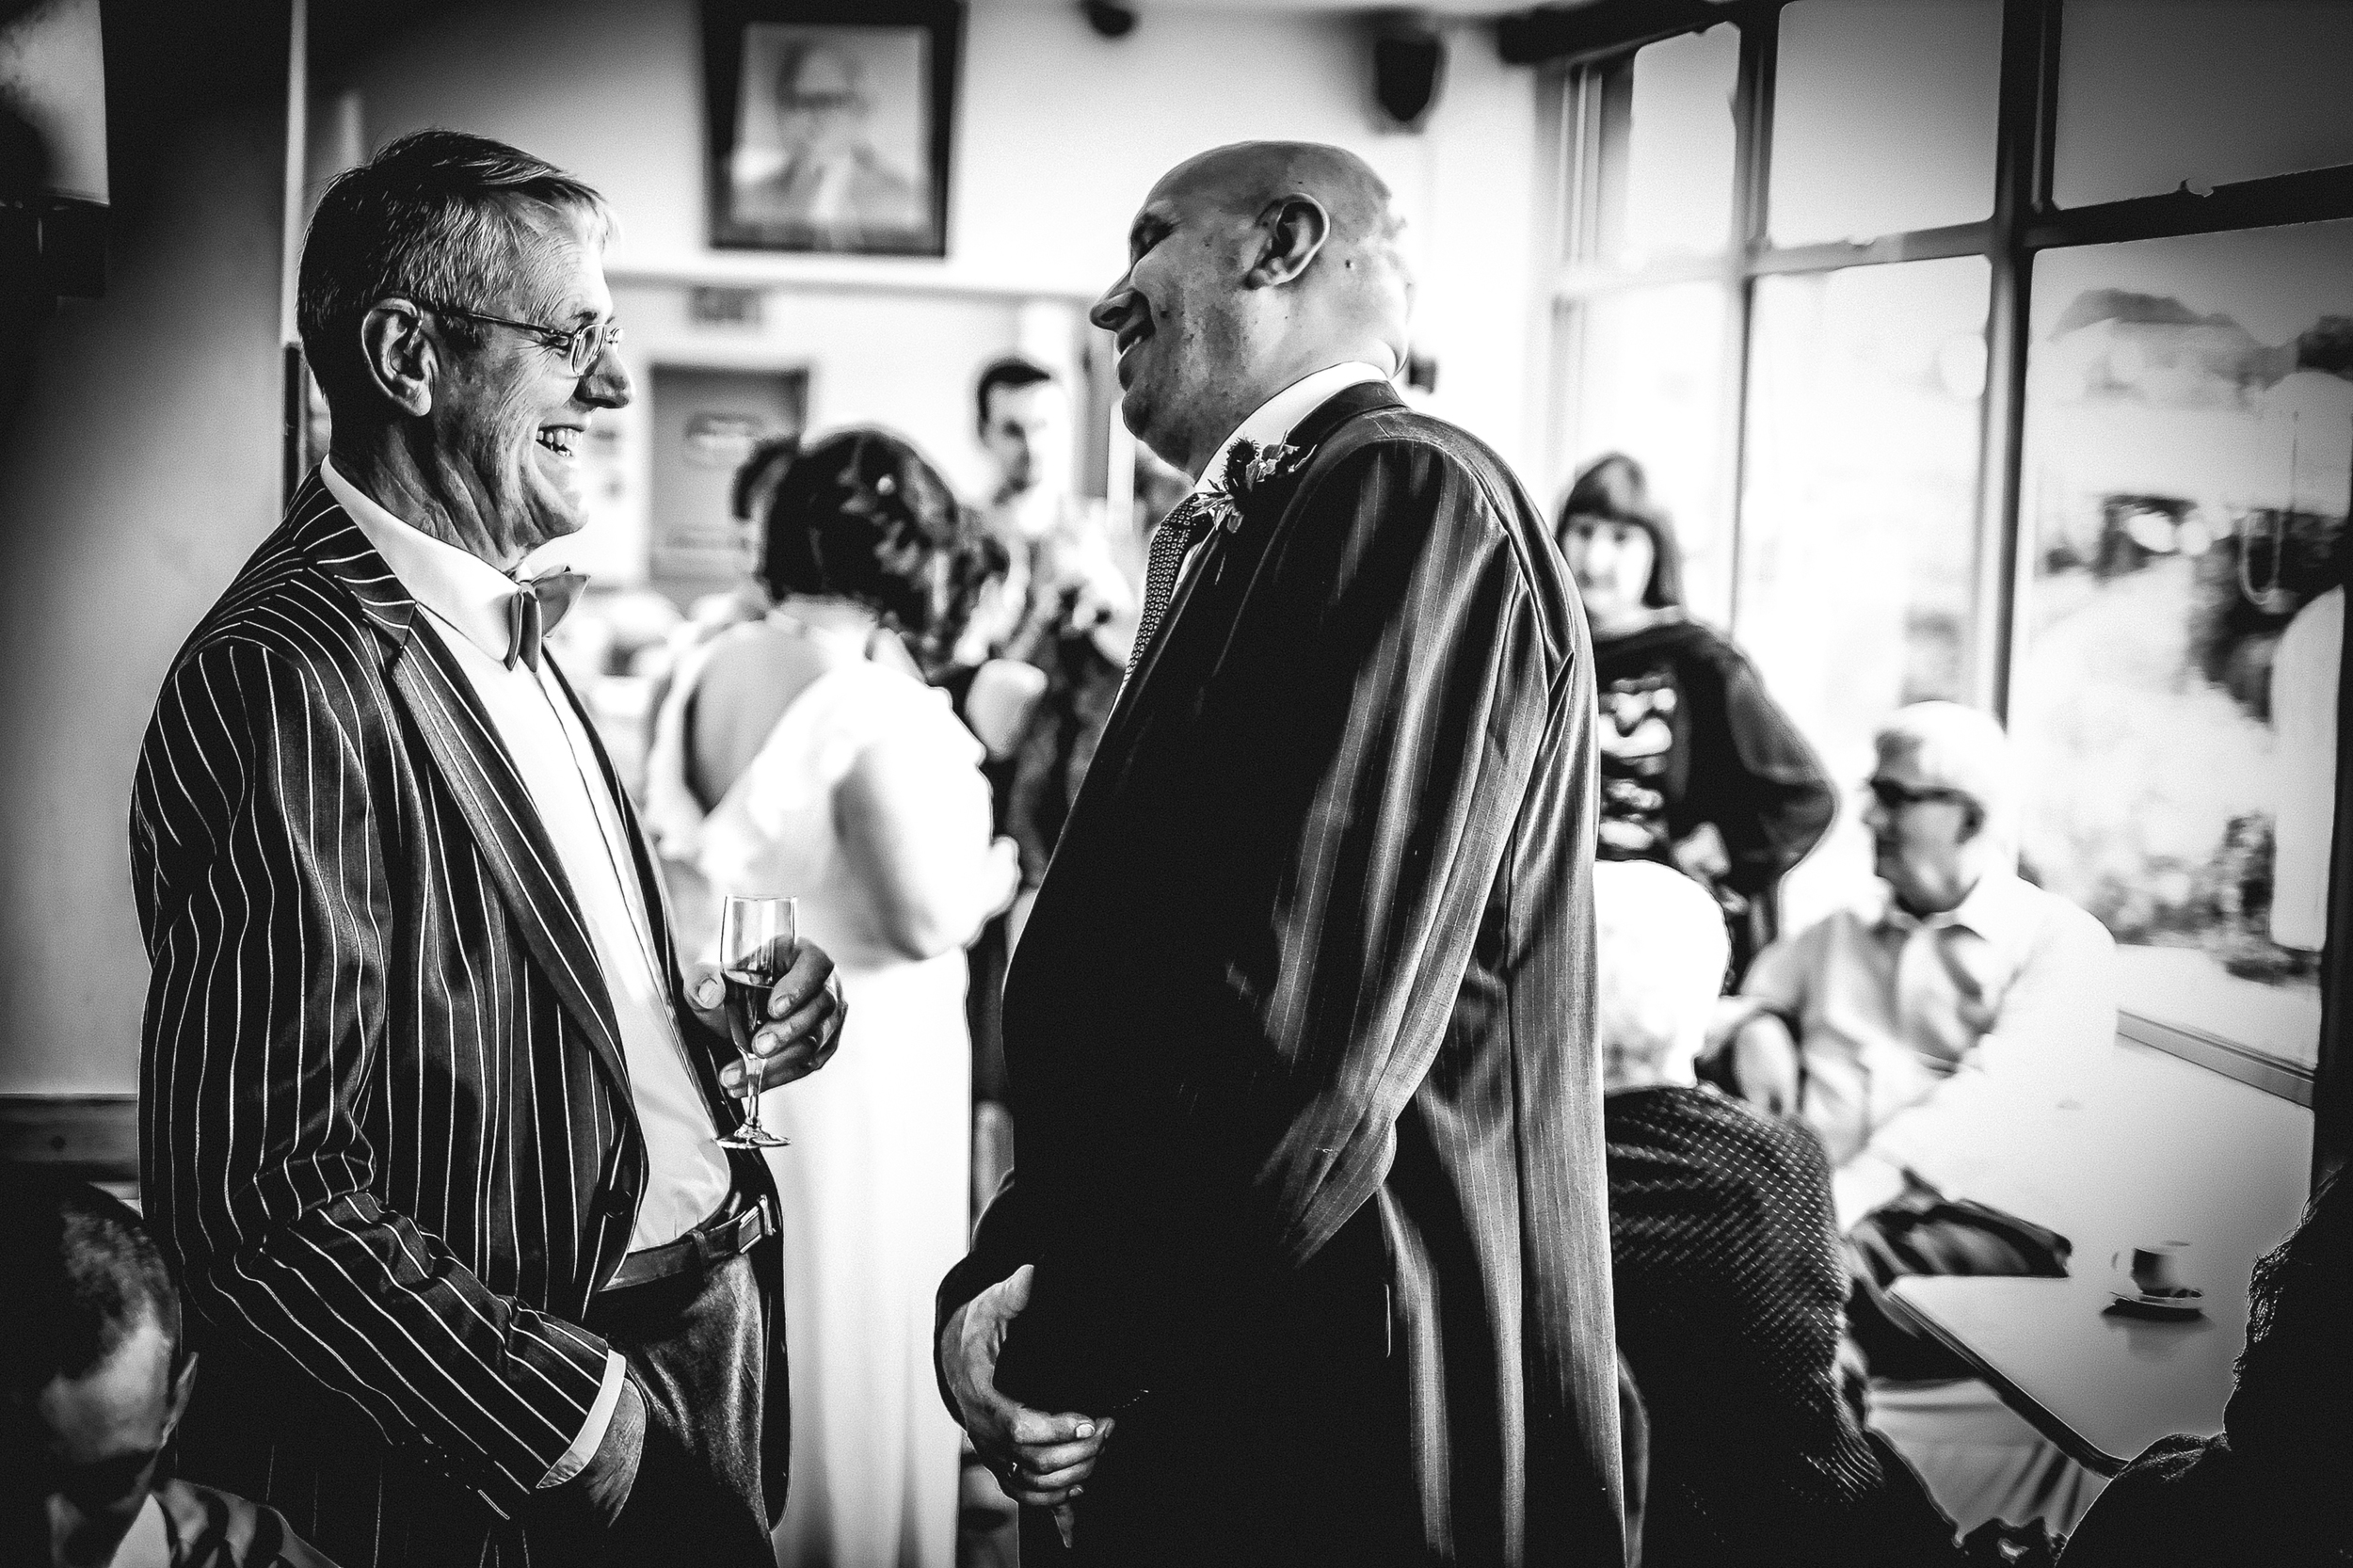 Lucy & David's wedding.  Fuji XE1 | 35mm | F1.6 - 1/250th - iso200